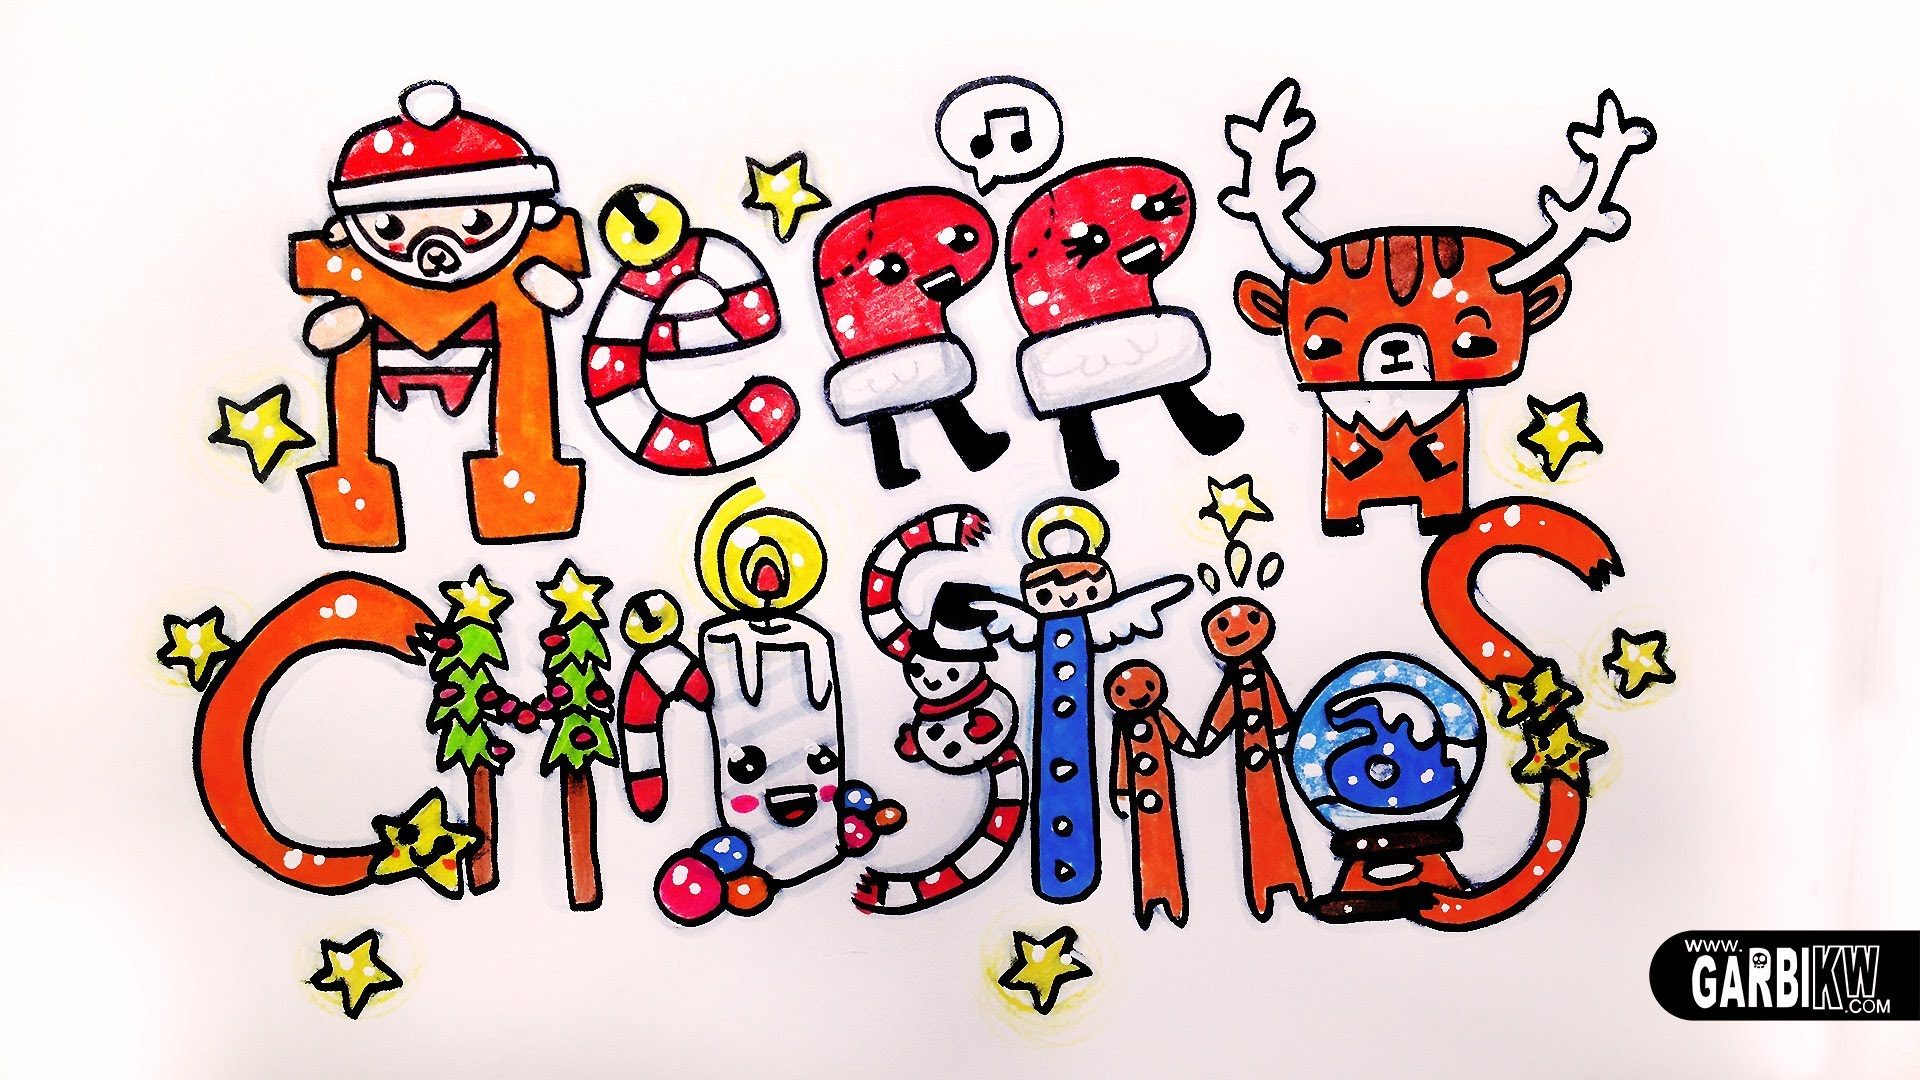 1920x1080 How To Draw Cute Christmas Easy And Kawaii Drawings By Garbi Kw